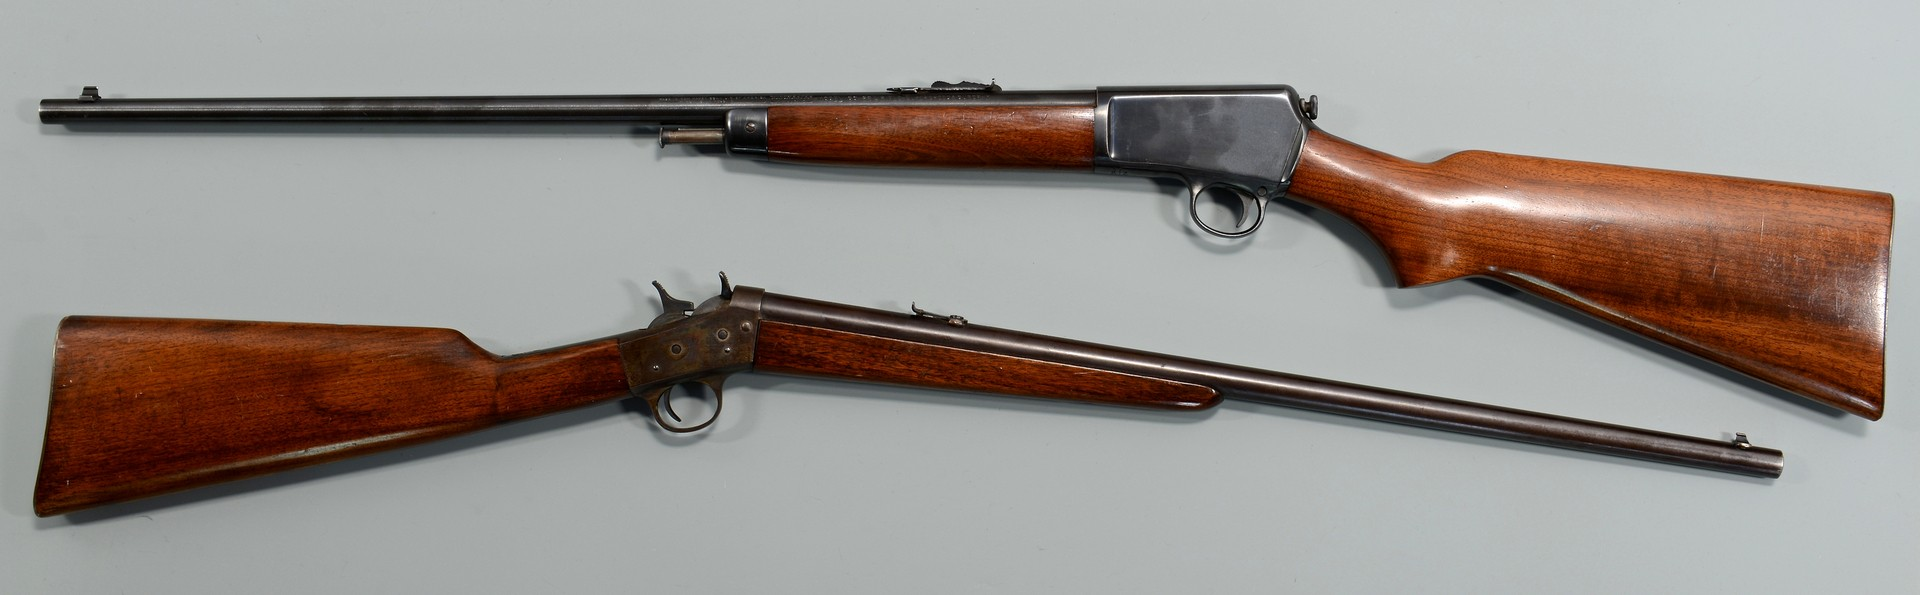 Lot 578: 2 rifles, .25 Remington & .22 Winchester